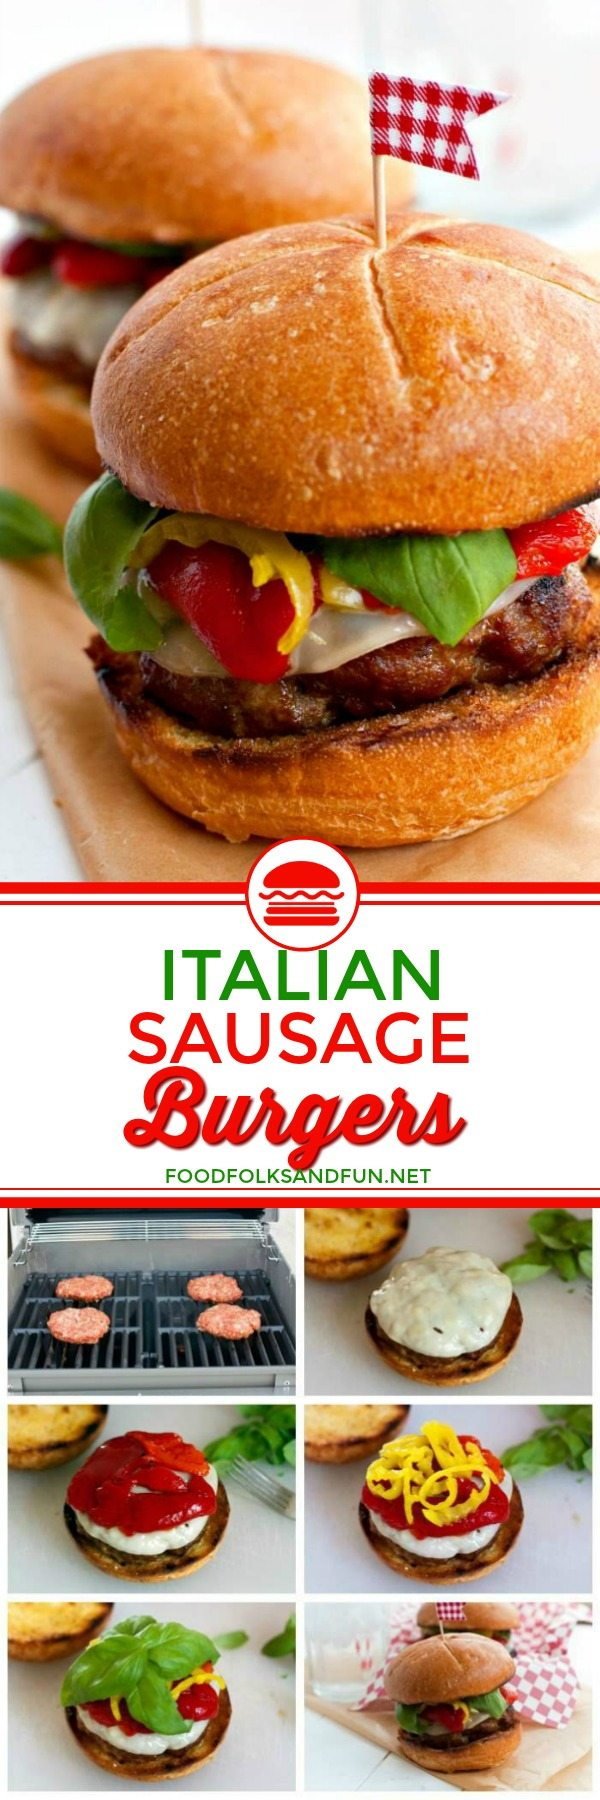 Easy Grilled Italian Sausage Burgers